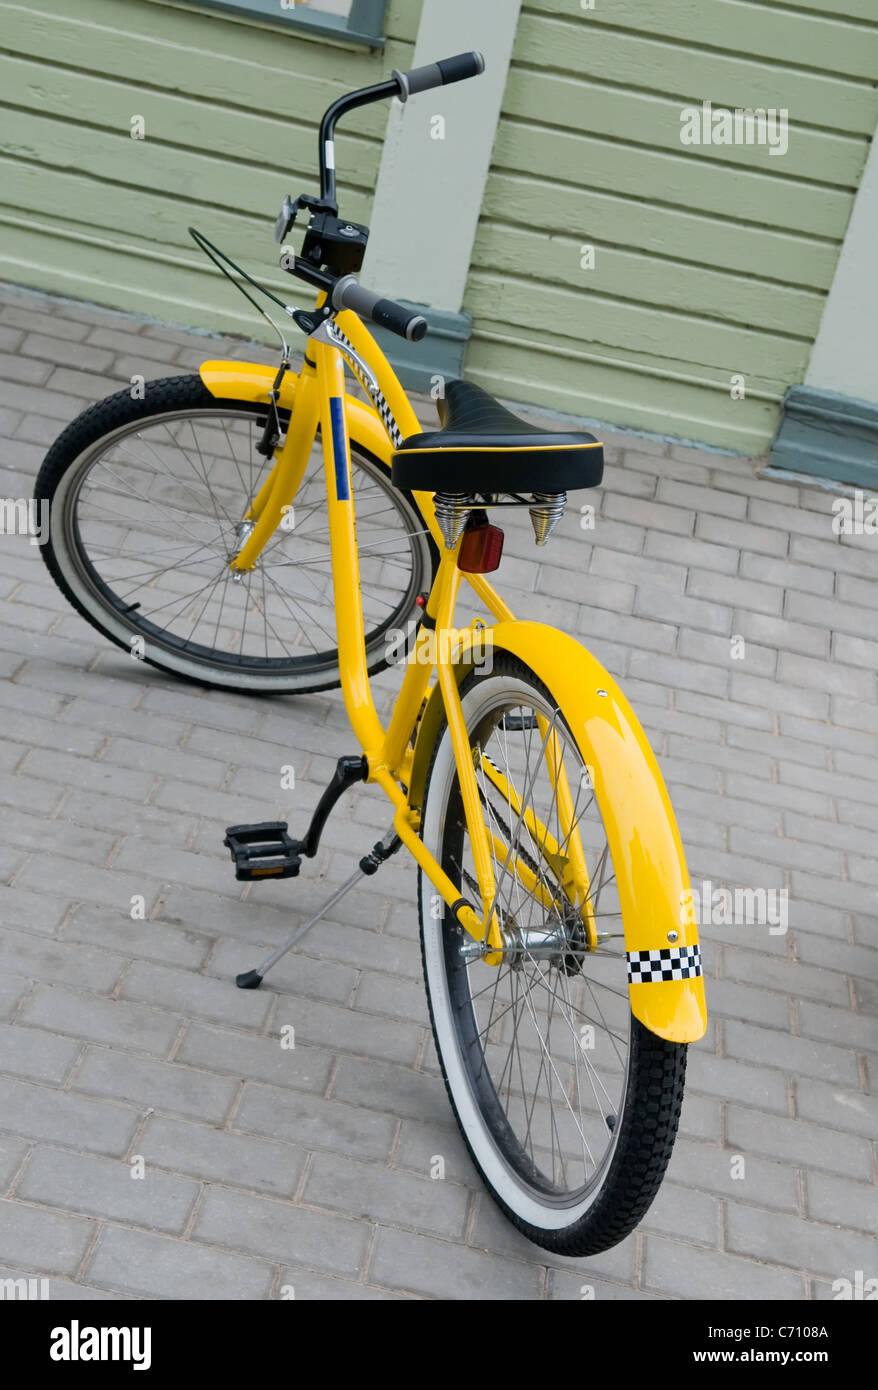 Bicycle of yellow colour with the drawn symbol of a taxi. - Stock Image